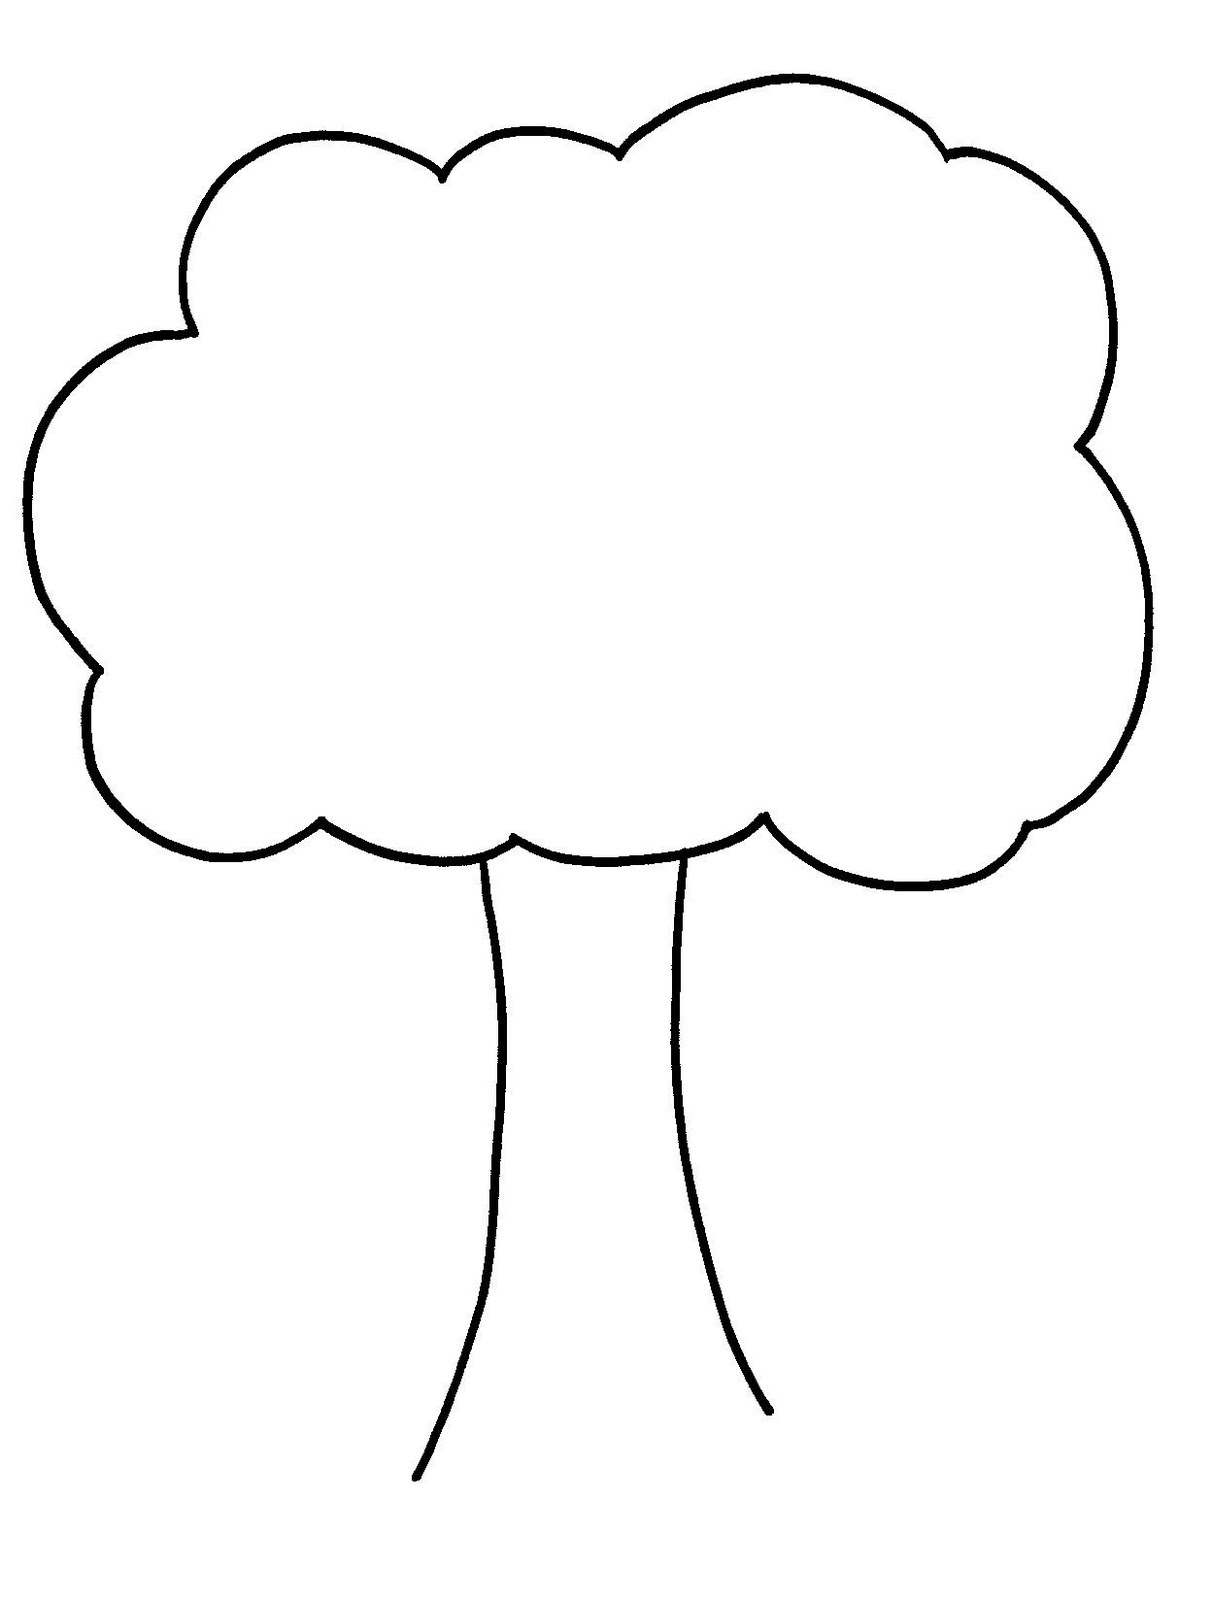 Tree outline printable clipart best for Plain family tree template